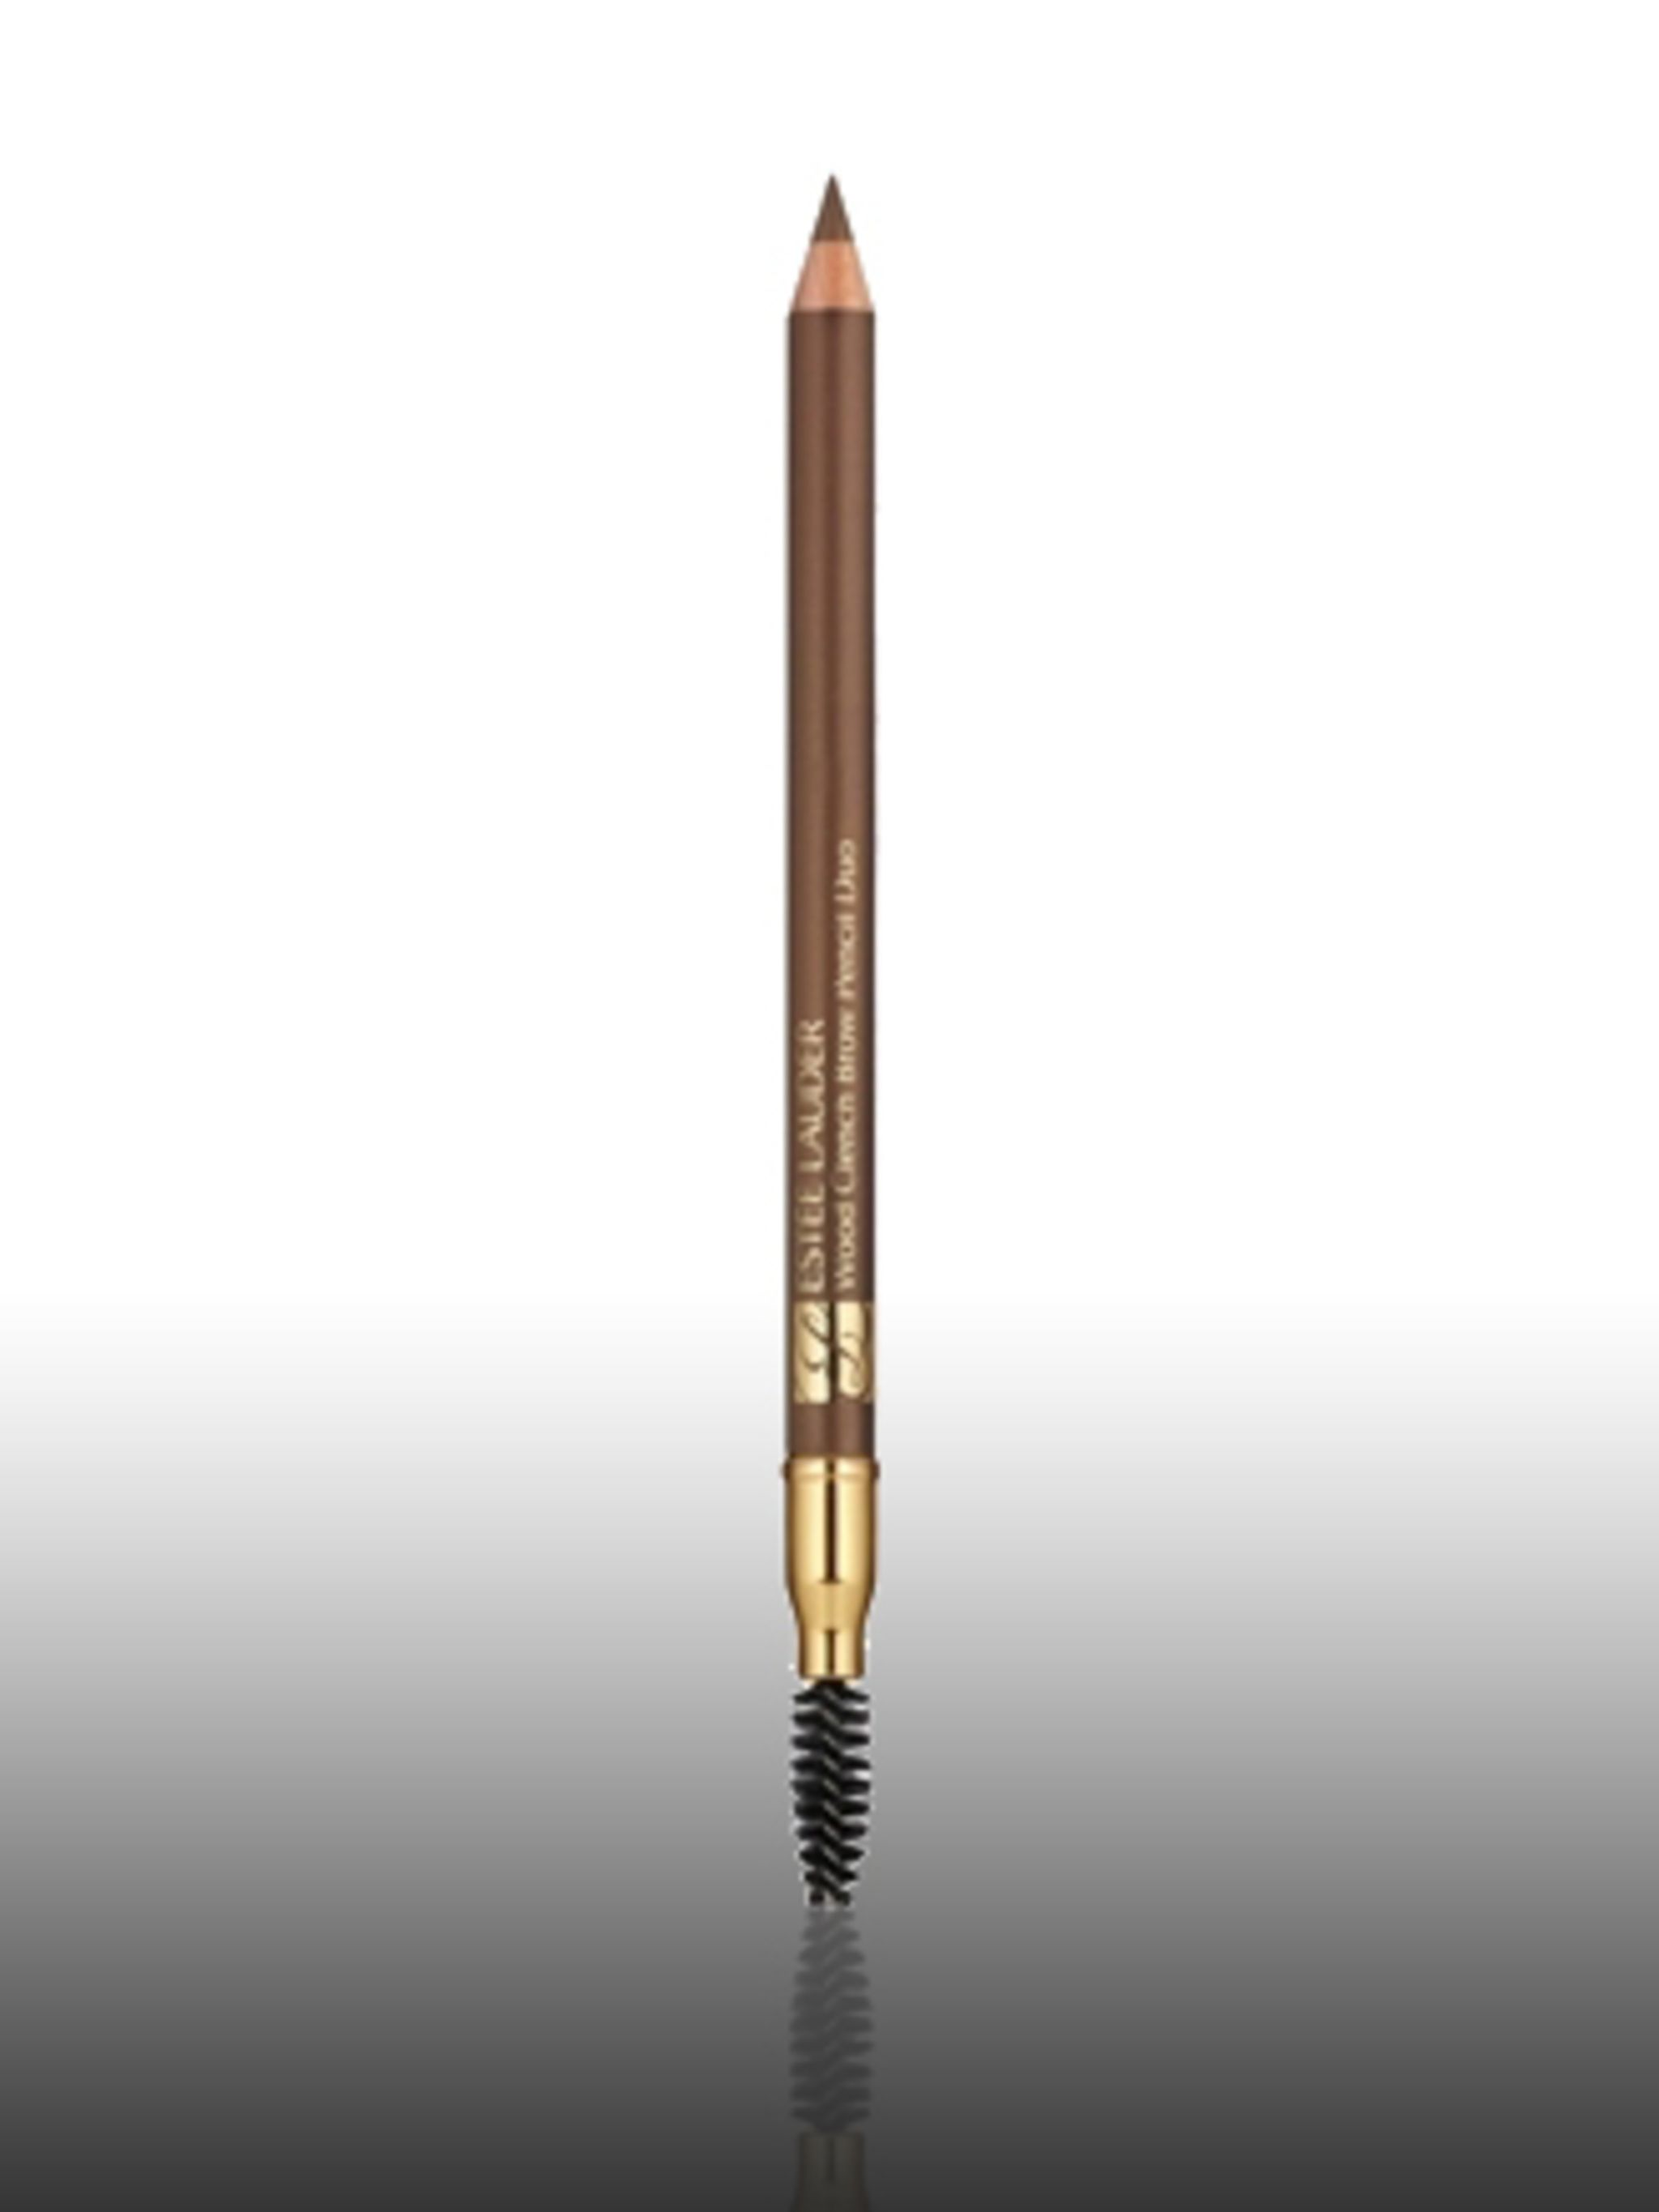 "<p>Brow Shaping Pencil, £12.50 by <a href=""http://www.esteelauder.co.uk/templates/products/sp_shaded.tmpl?CATEGORY_ID=CAT1023&PRODUCT_ID=PROD89441"">Estee Lauder</a> </p>"